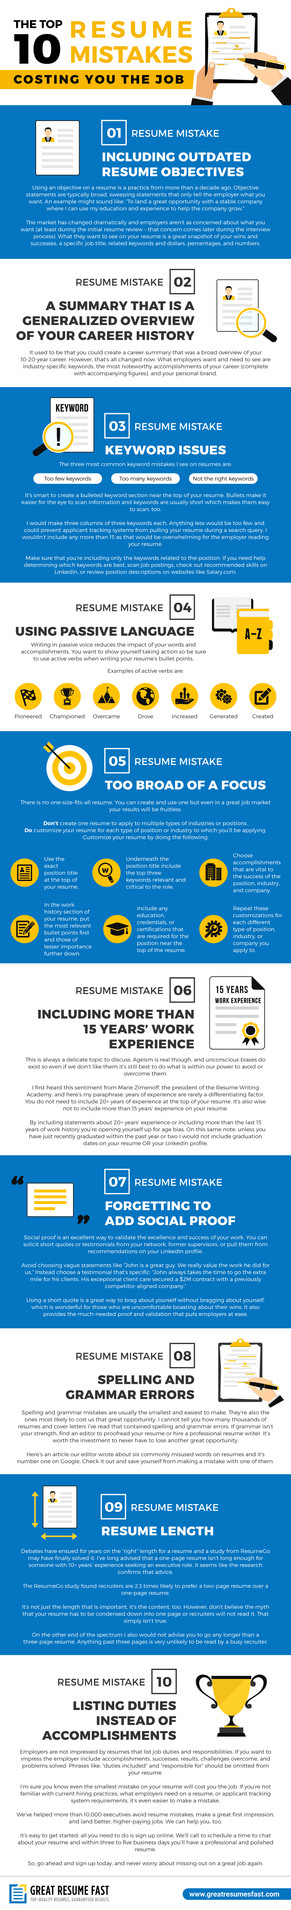 The Top 10 Resume Mistakes that Cost You the Job